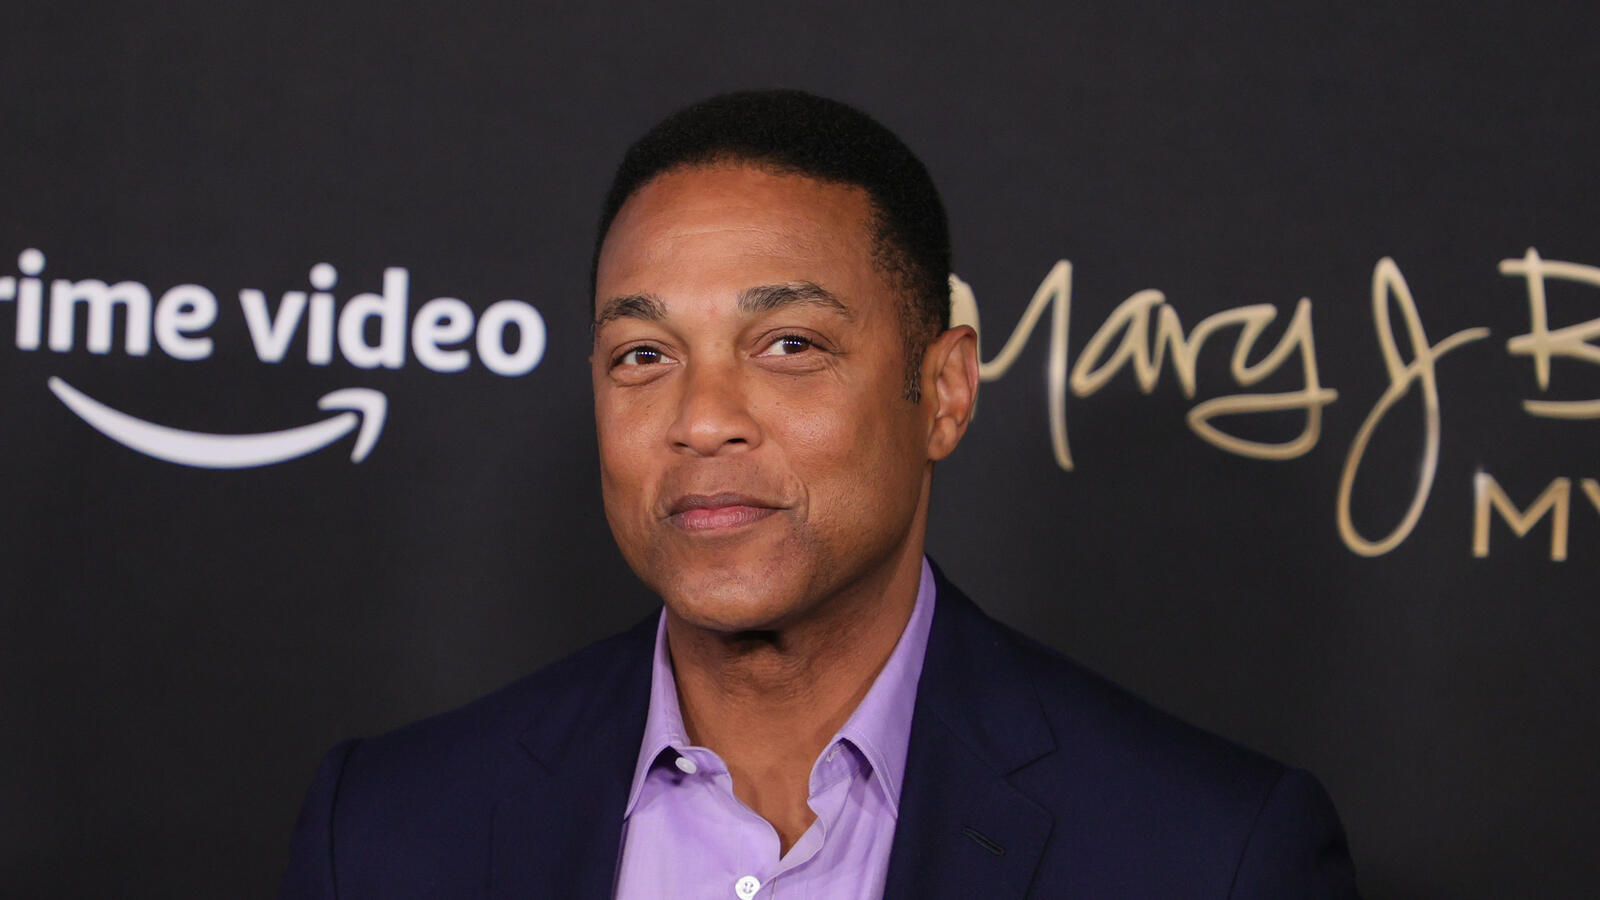 CNN's Don Lemon Expresses Frustration: It's Time To 'Shun' The Unvaccinated